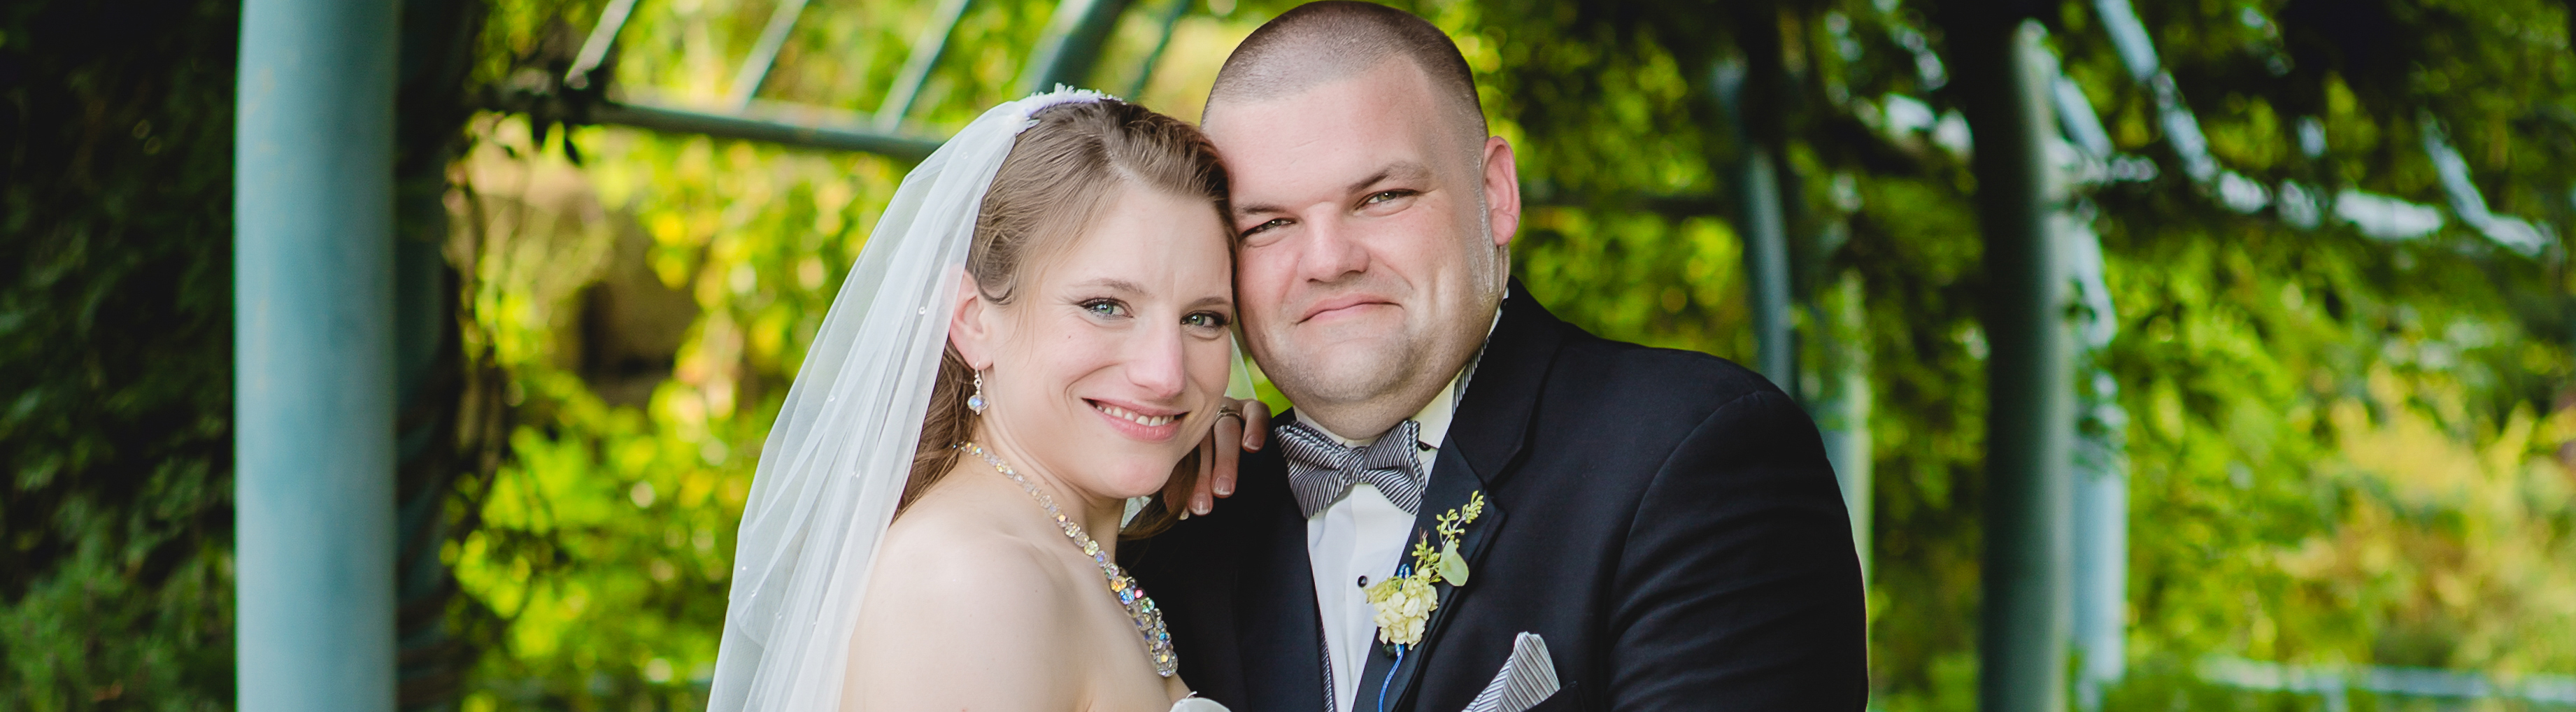 Andrea & Nate Wedding Preview | 9.5.15 | Pittsburgh Wedding Photographer